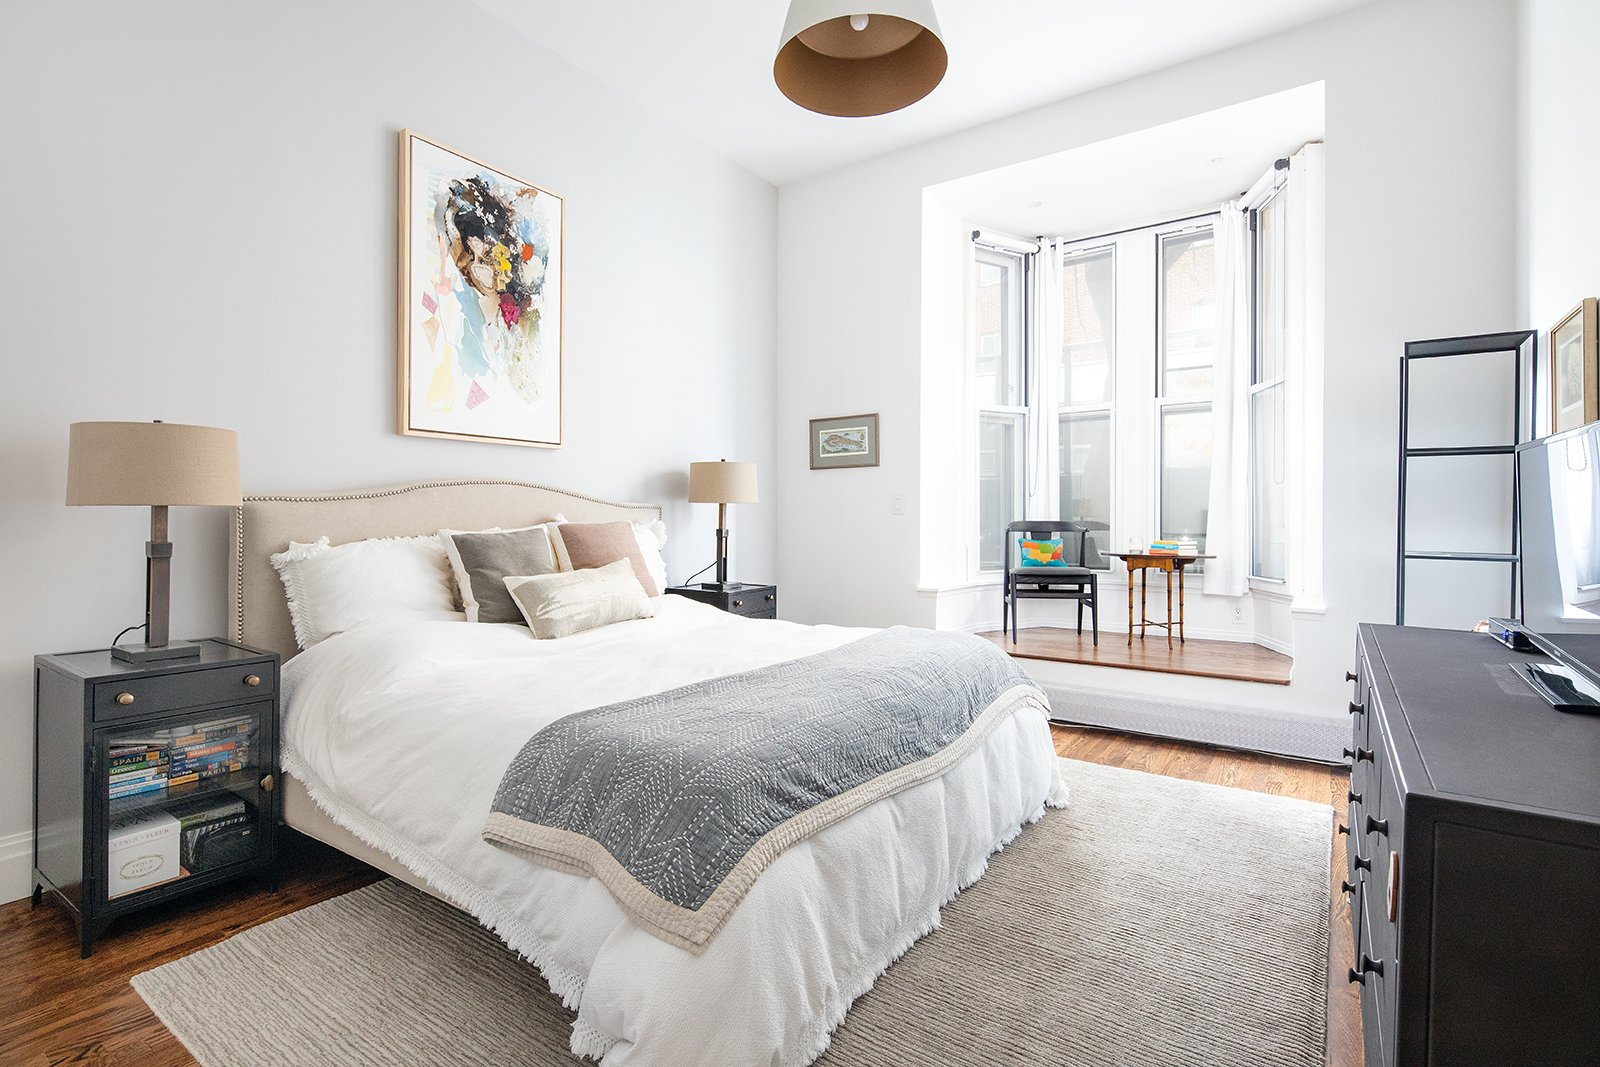 Bedroom, Rug Floor, Table Lighting, Pendant Lighting, Medium Hardwood Floor, Bed, Chair, and Night Stands A look at the master bedroom.  Photo 12 of 14 in An Updated 1845 Brooklyn Home Hits the Market at $2.95M